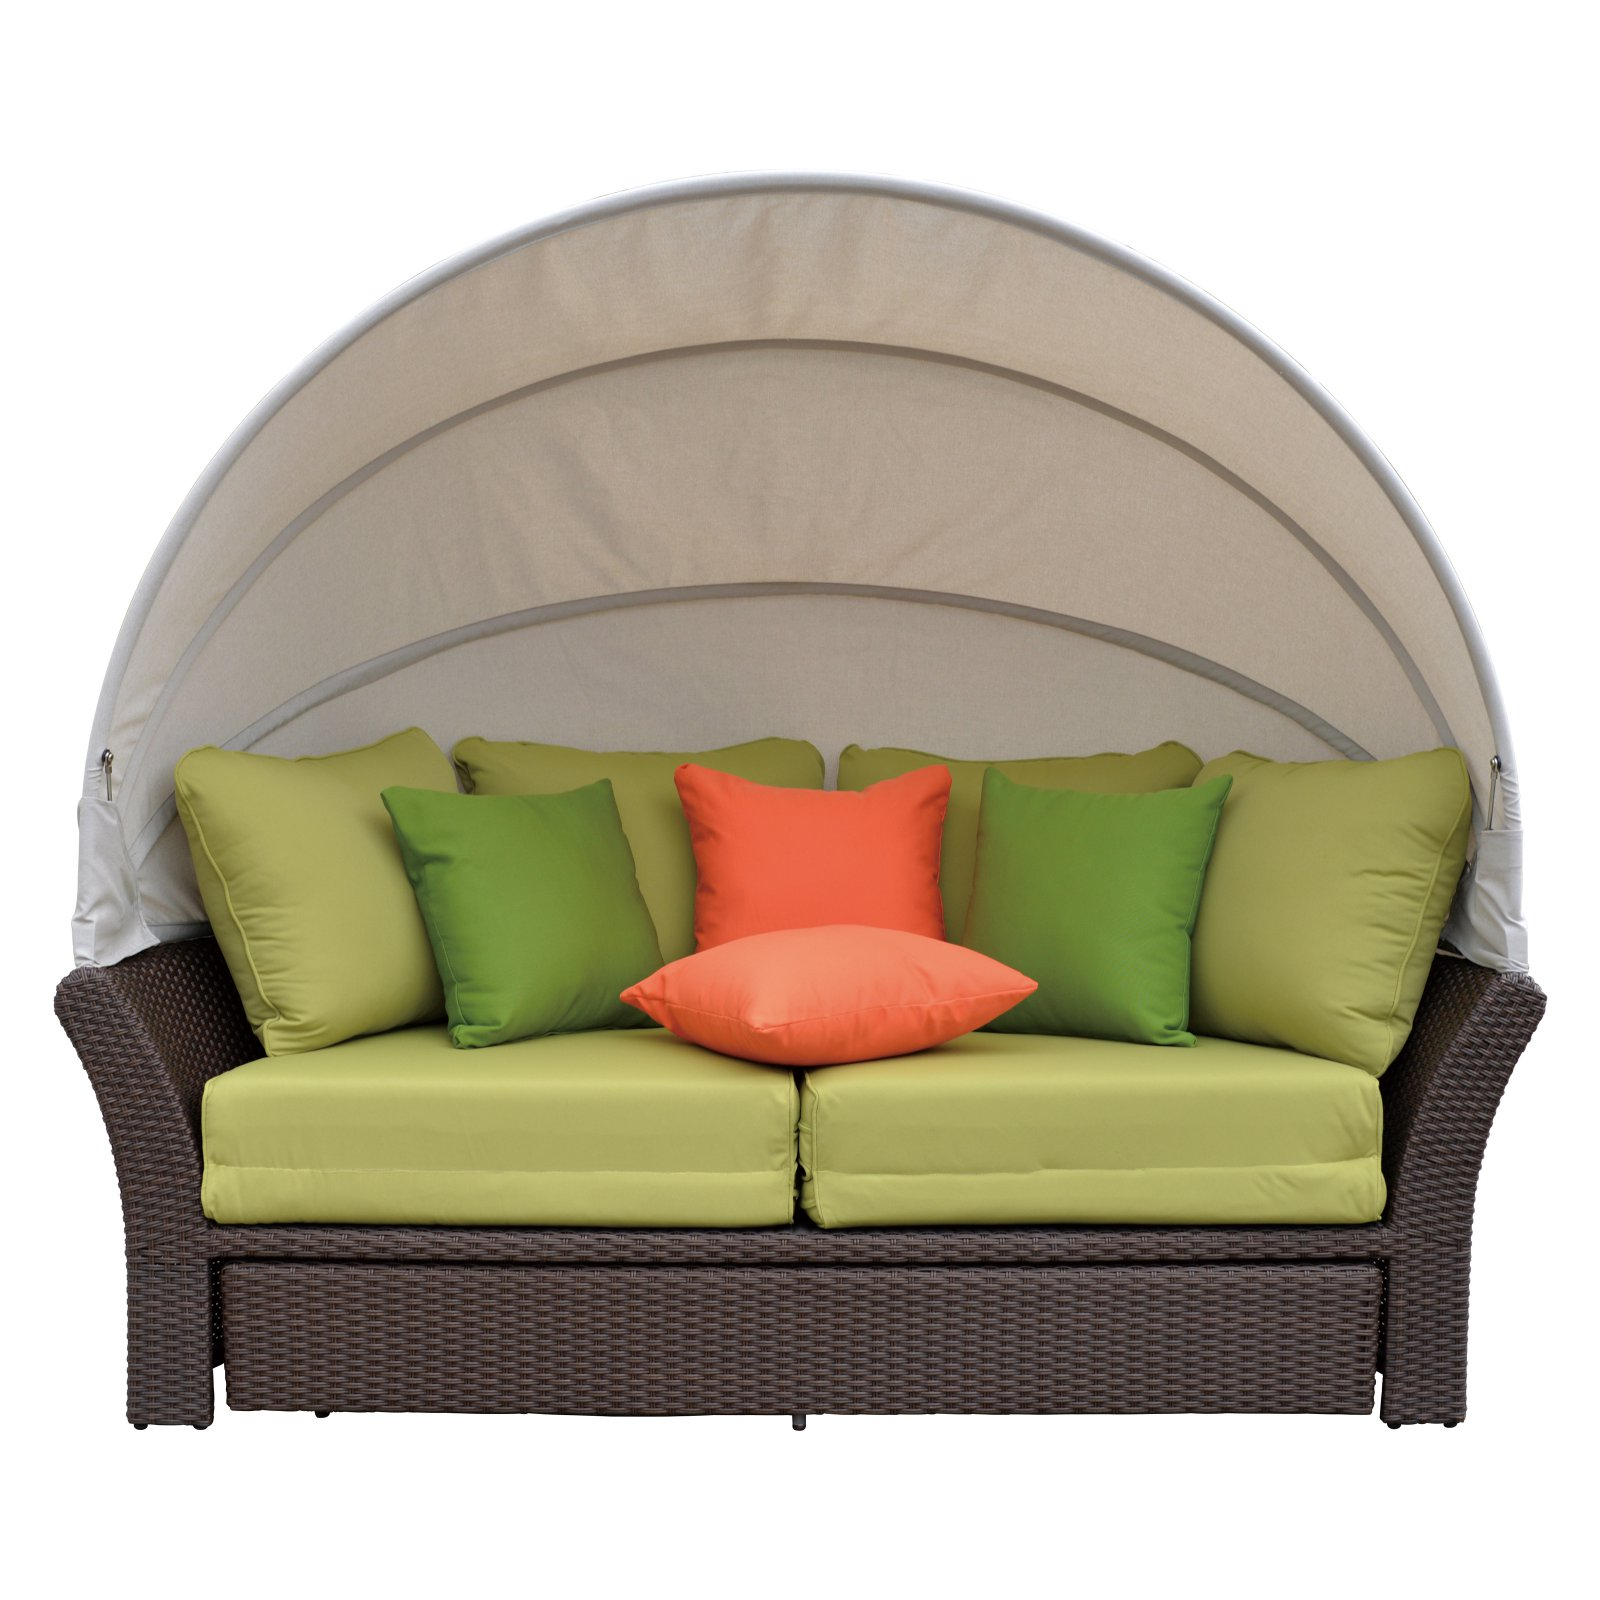 Coutyard Casual Green Eclipse Outdoor Expandable Oval Day Bed with Canopy by Courtyard Casual